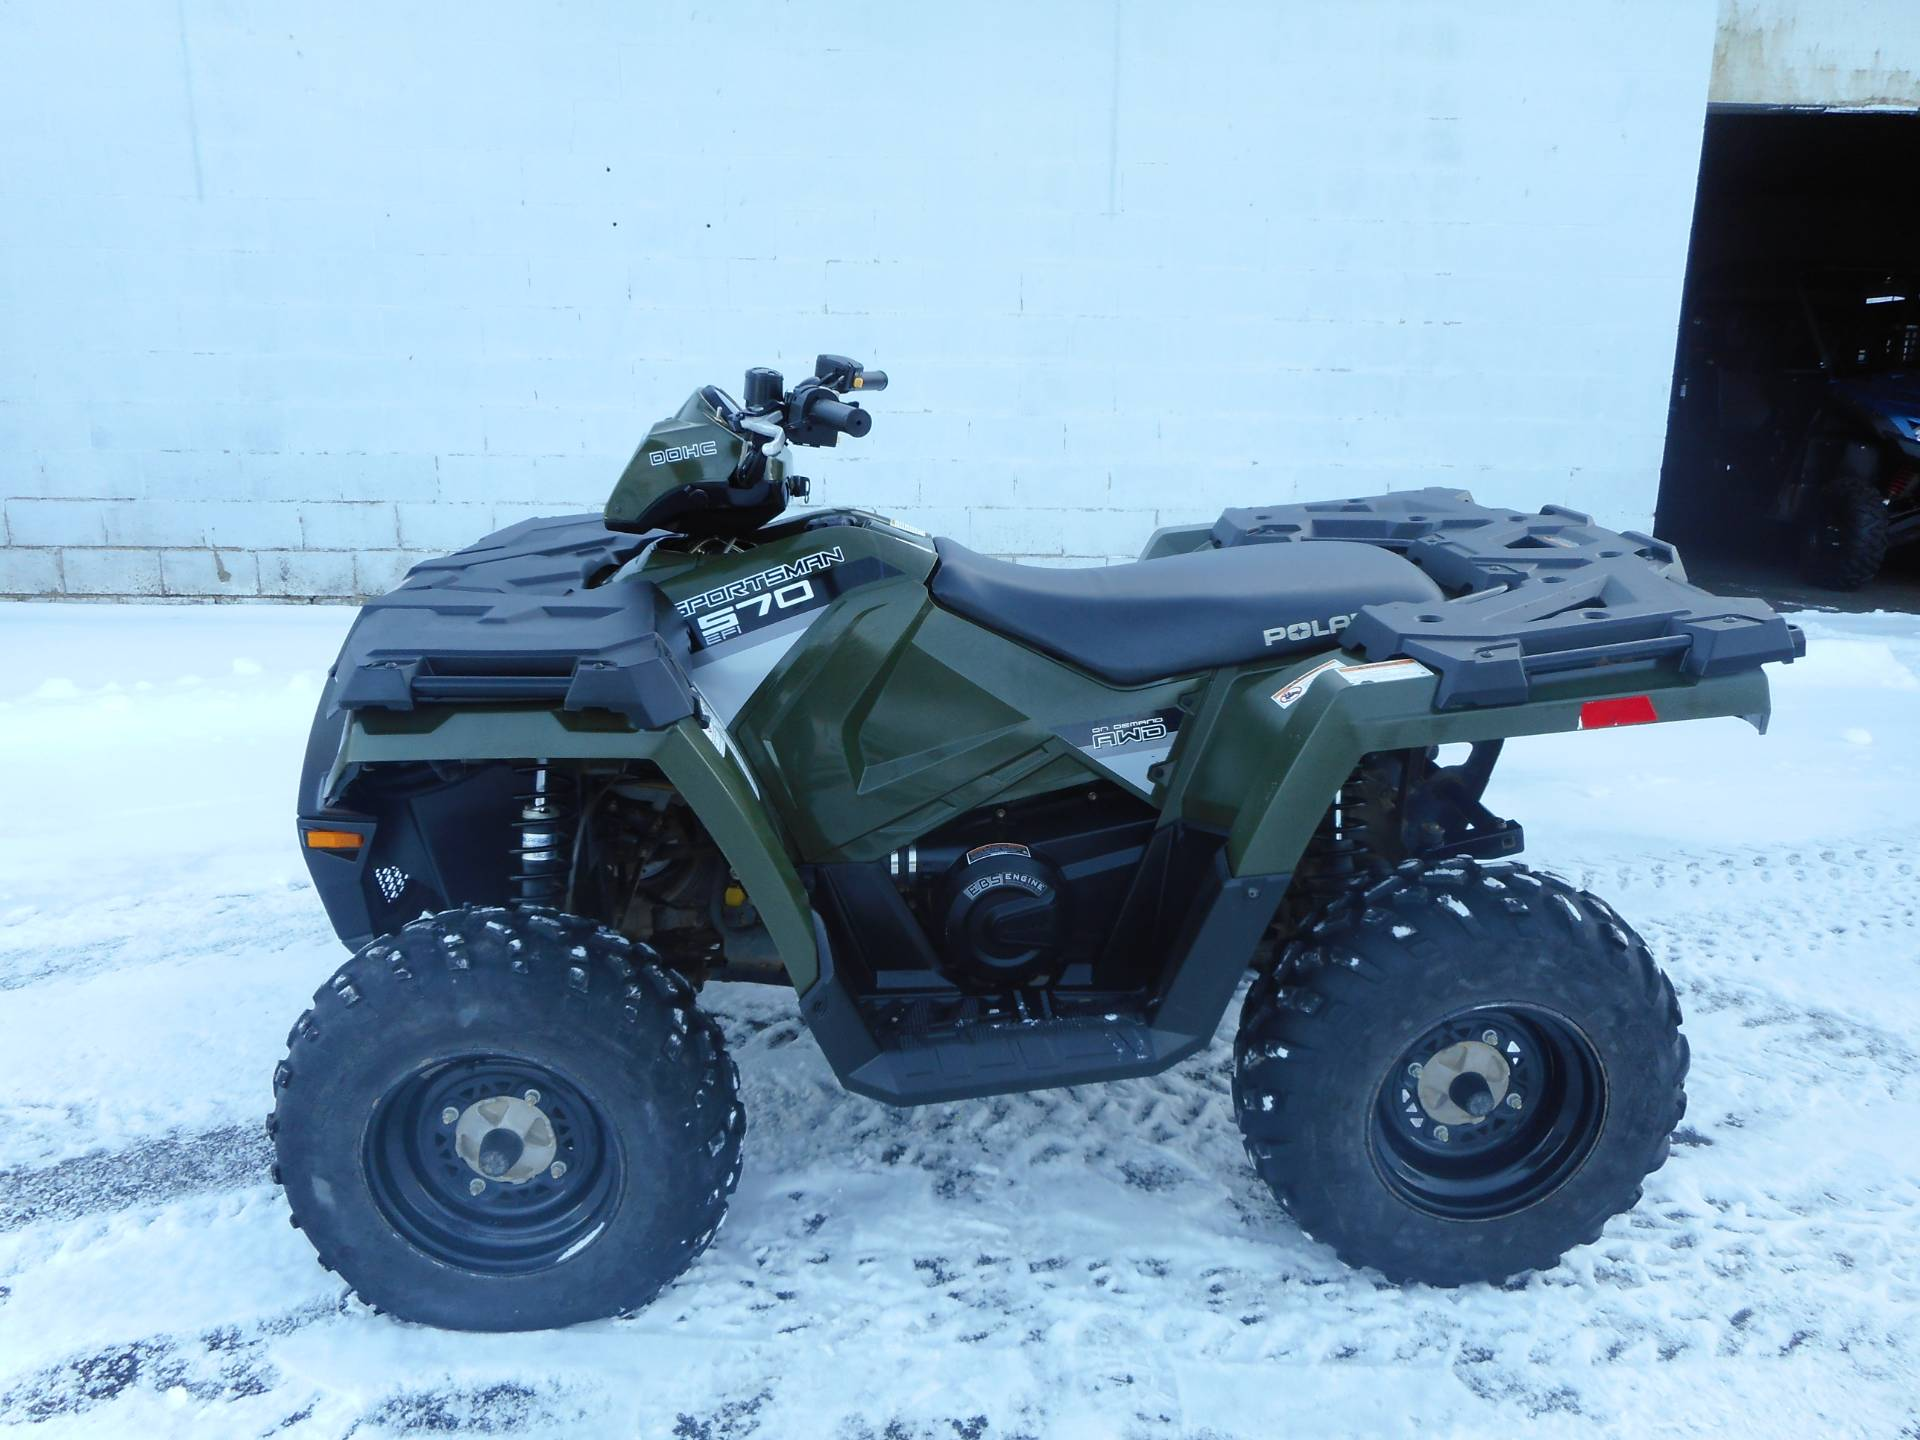 2014 Polaris Sportsman® 570 EFI in Galeton, Pennsylvania - Photo 1